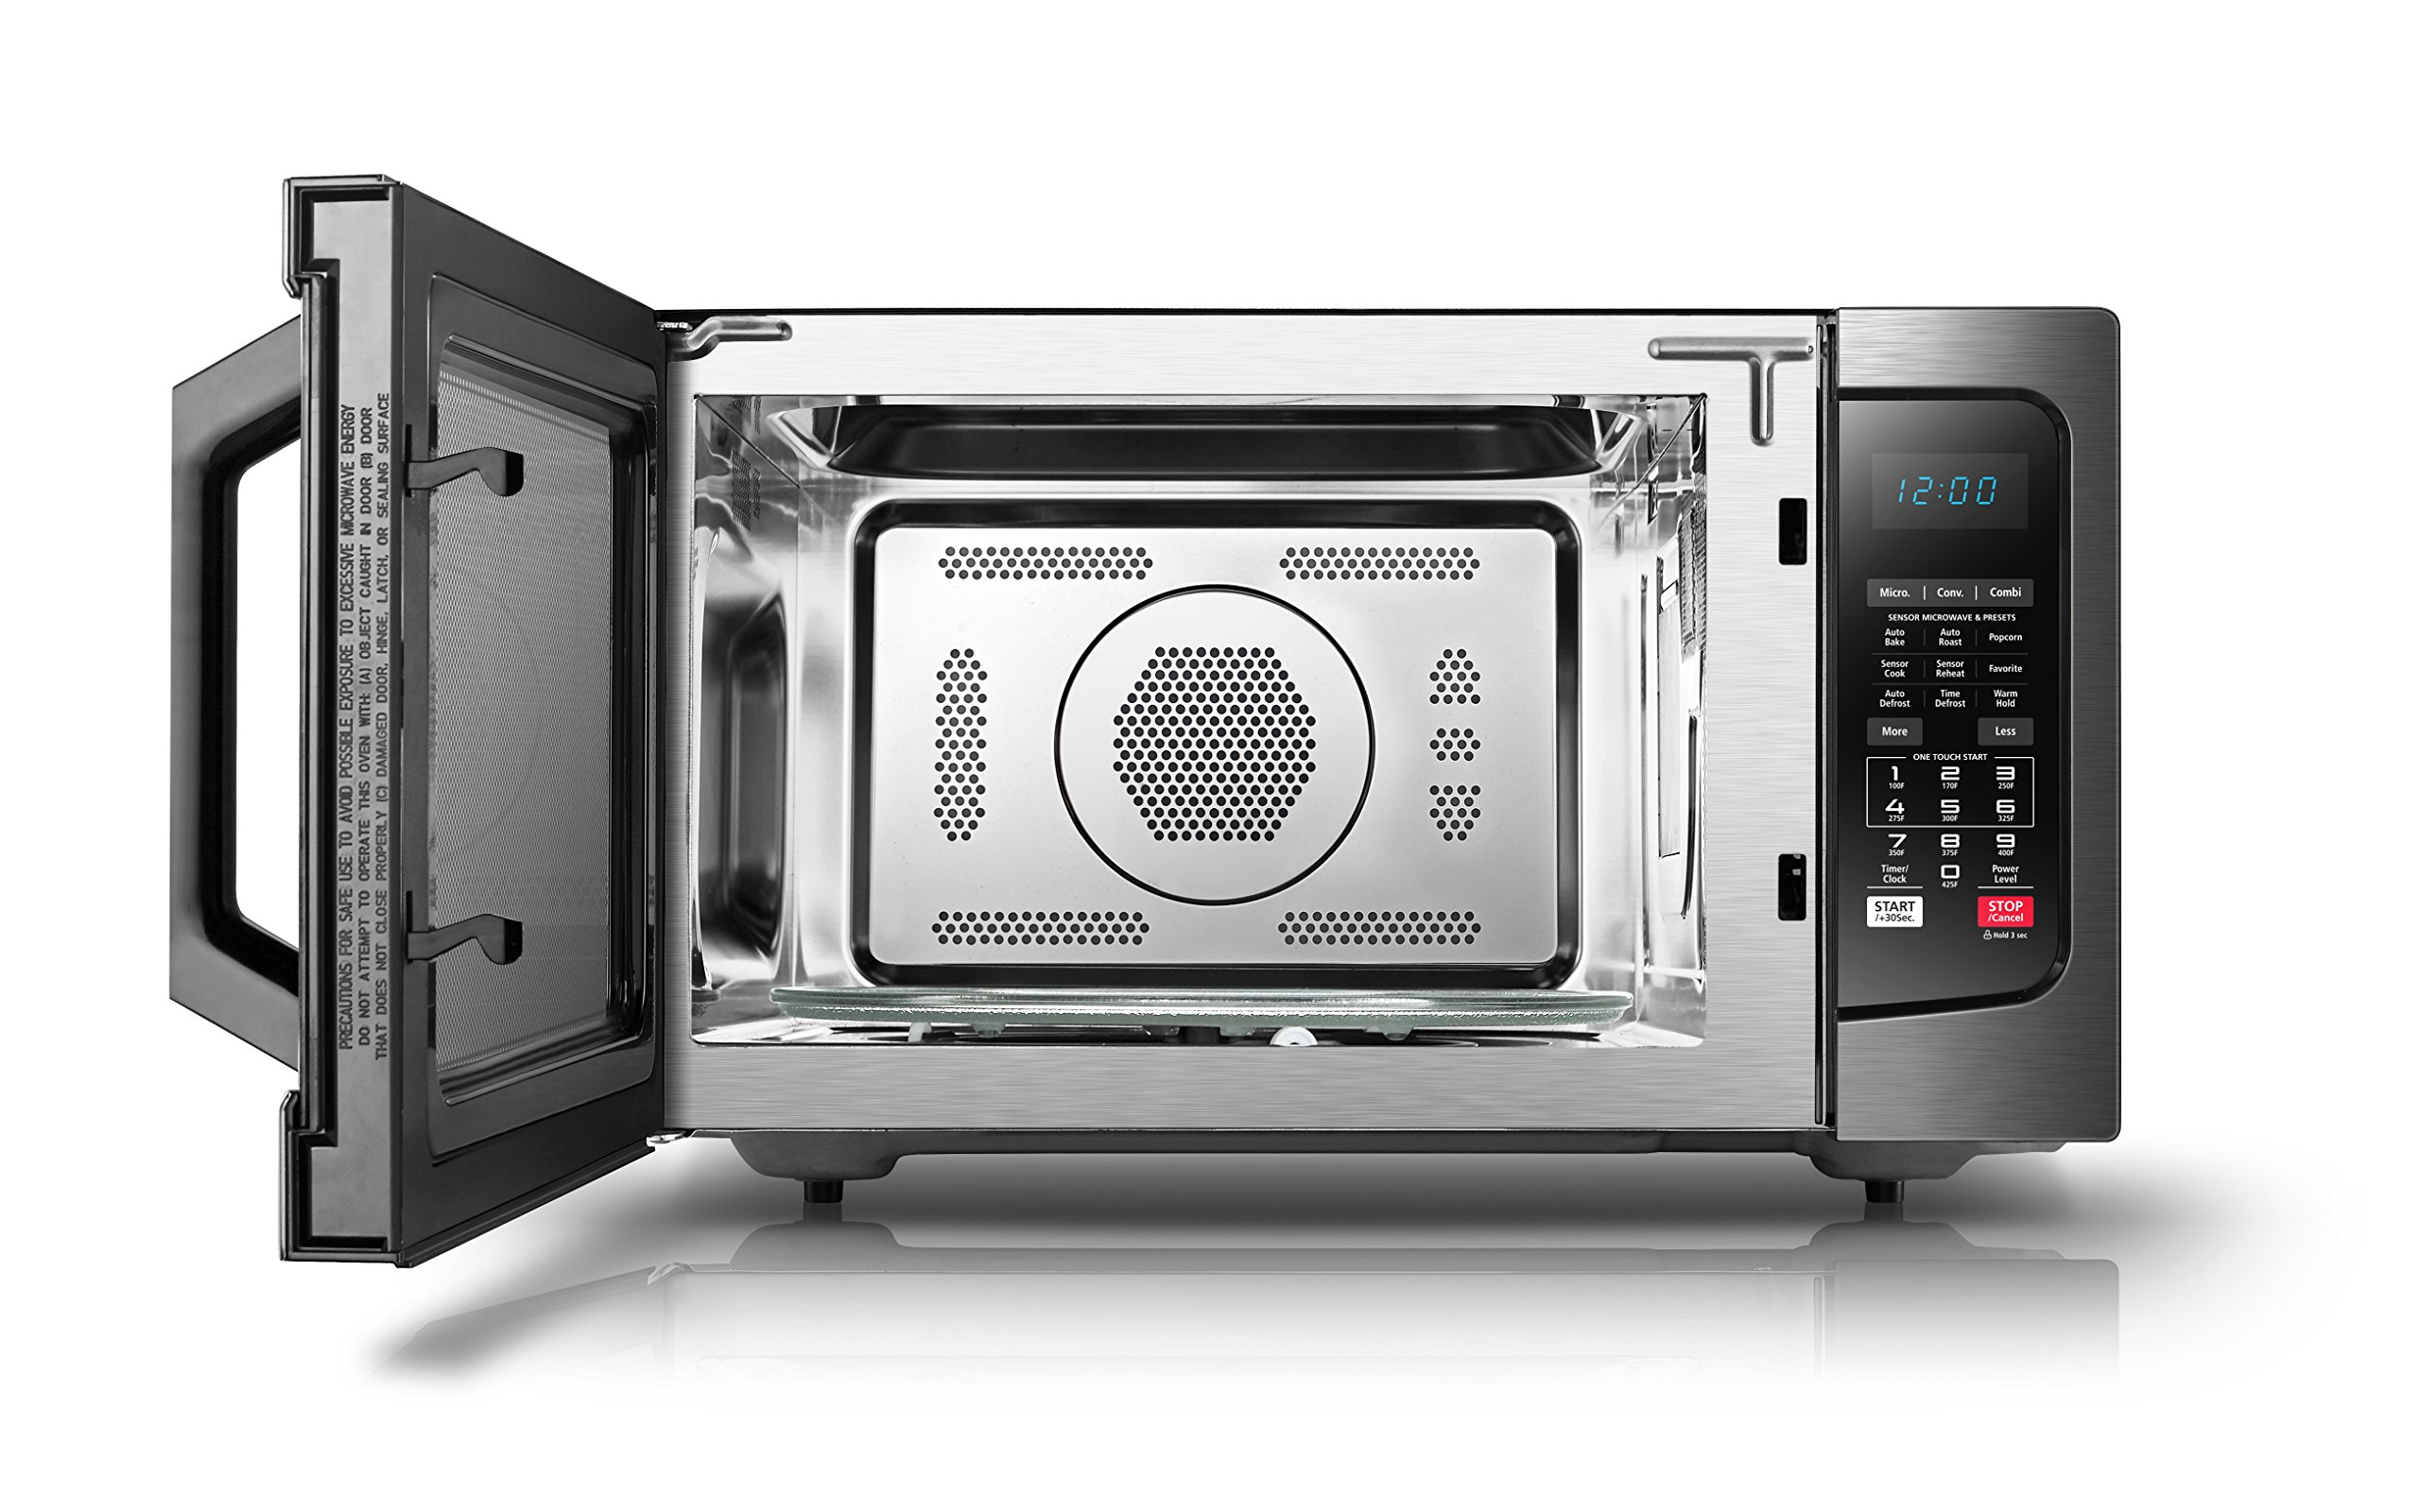 Toshiba Ec042a5c Bs Convection Microwave Oven With